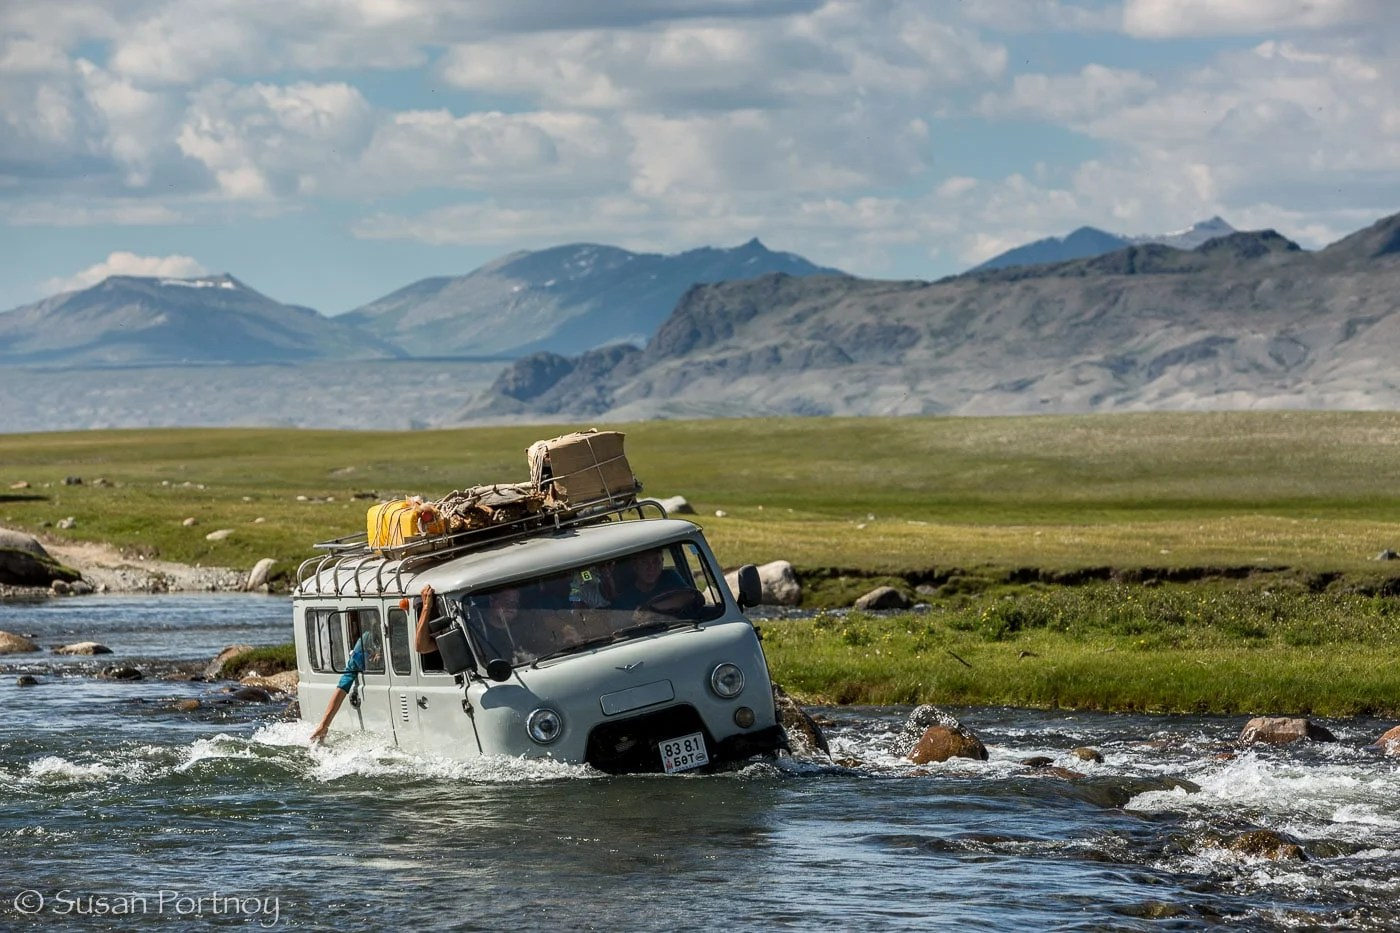 Russian van during a river crossing in Altai Tavan Bogd National Park, Mongolia